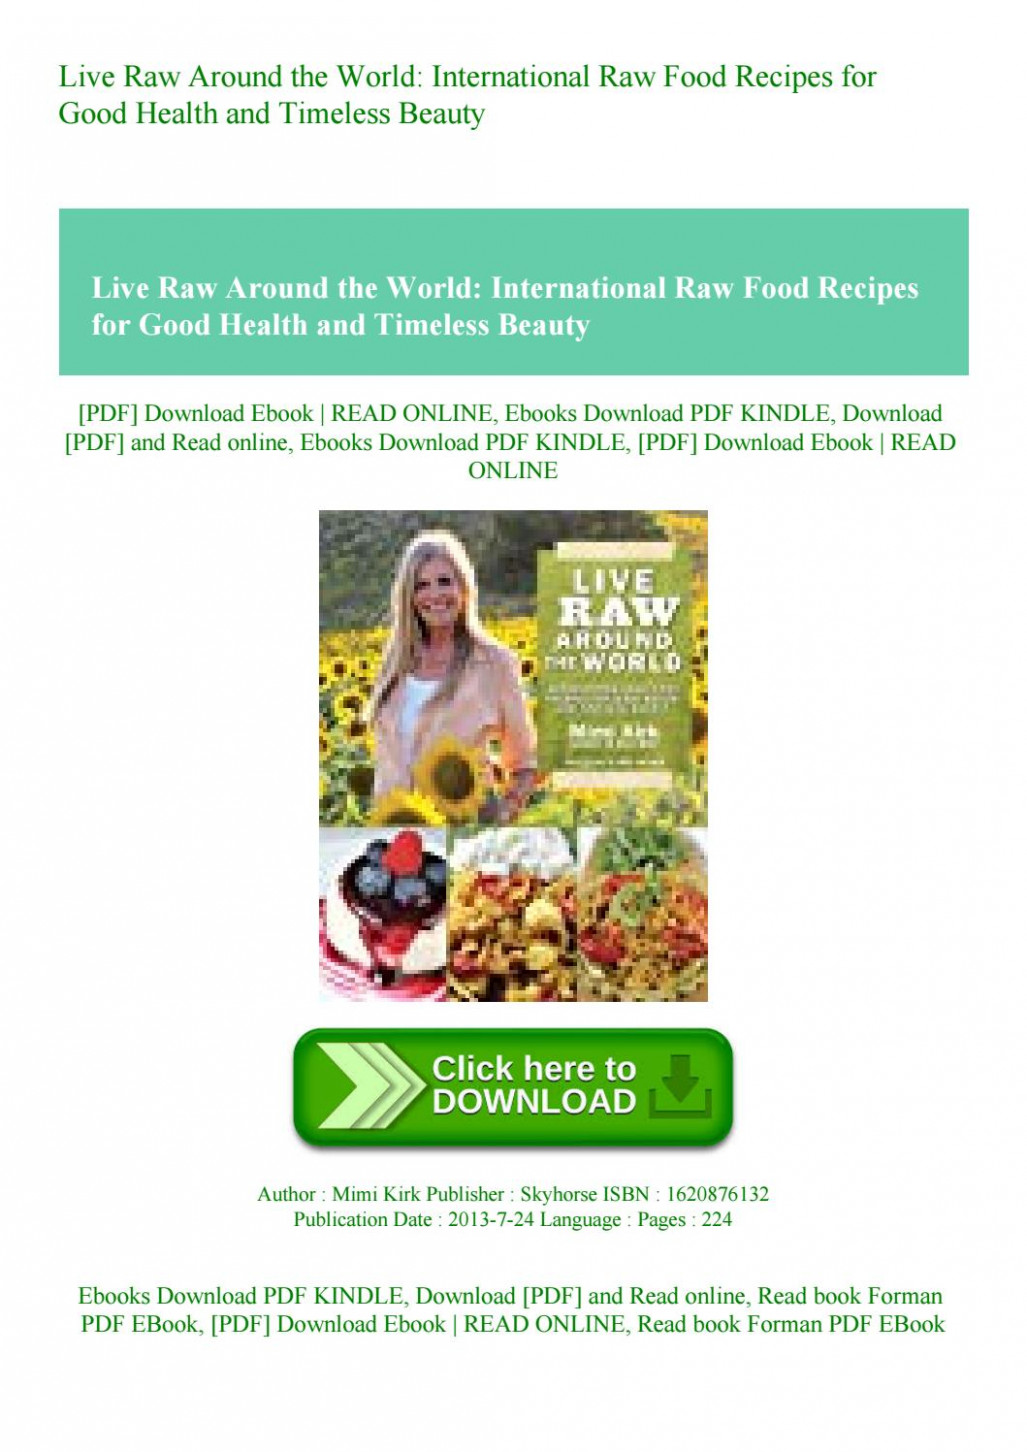 Live Raw Around the World International Raw Food Recipes for ..